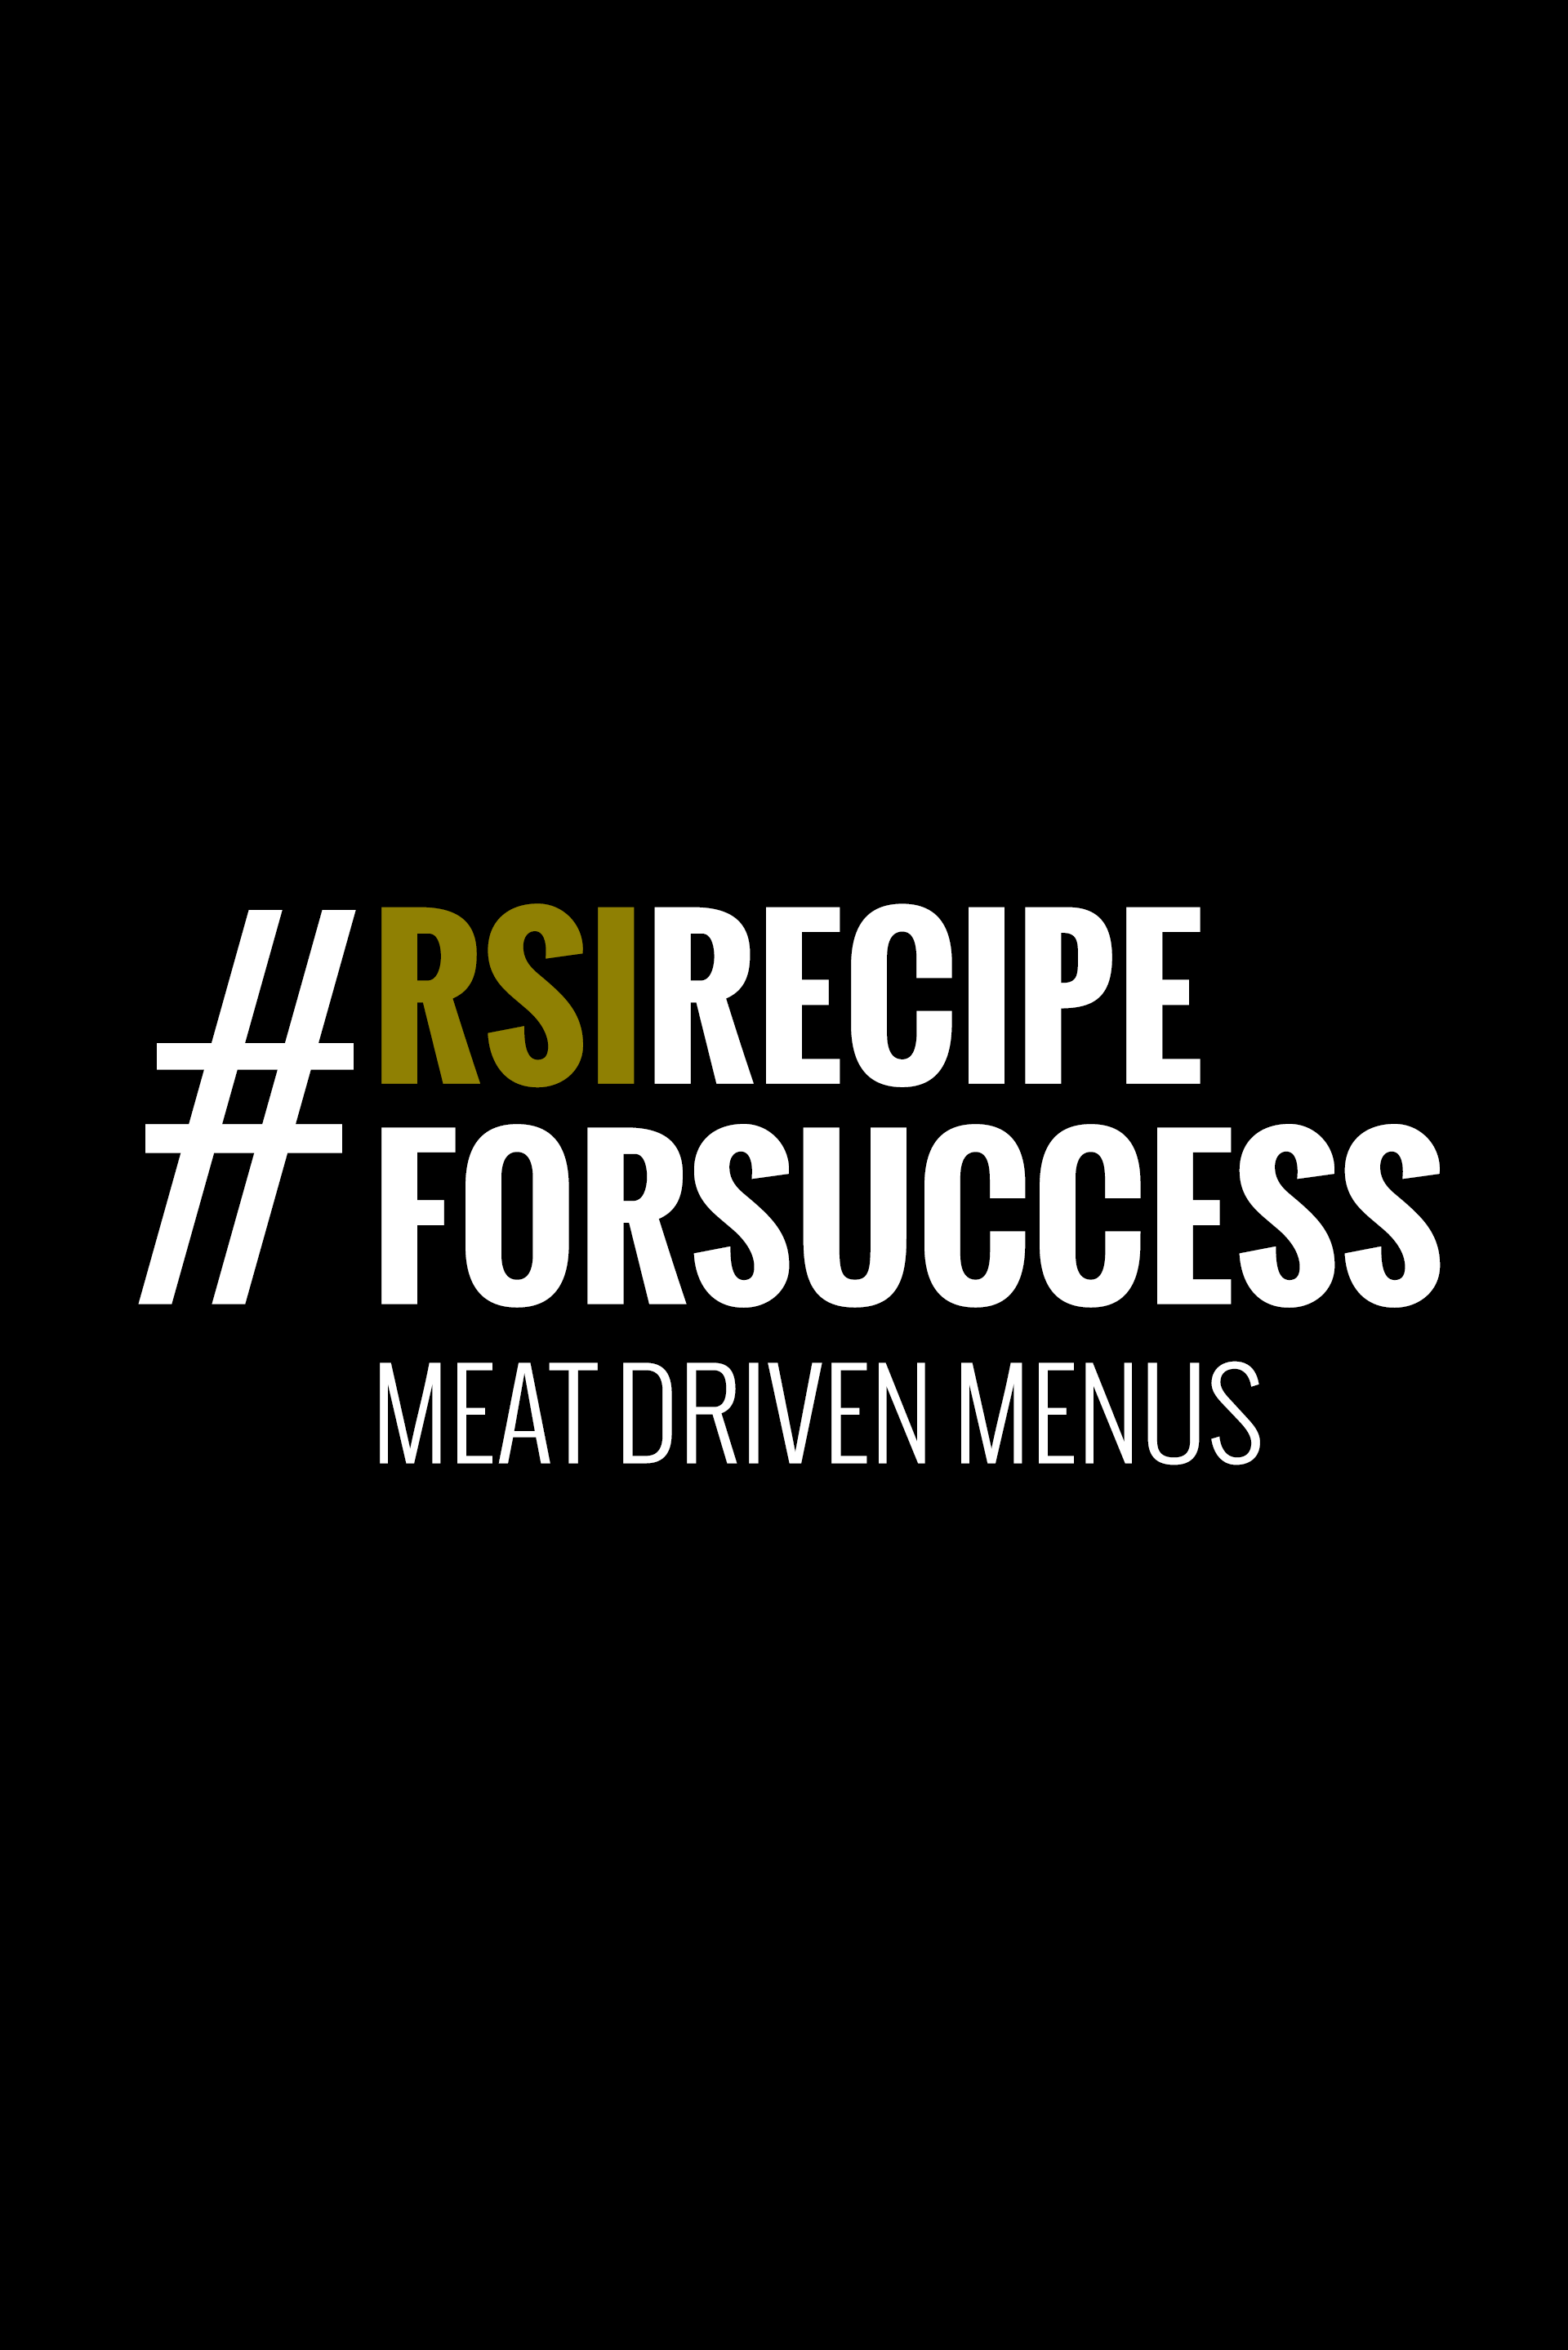 Ingredient# 4.1 Meat Driven Menus